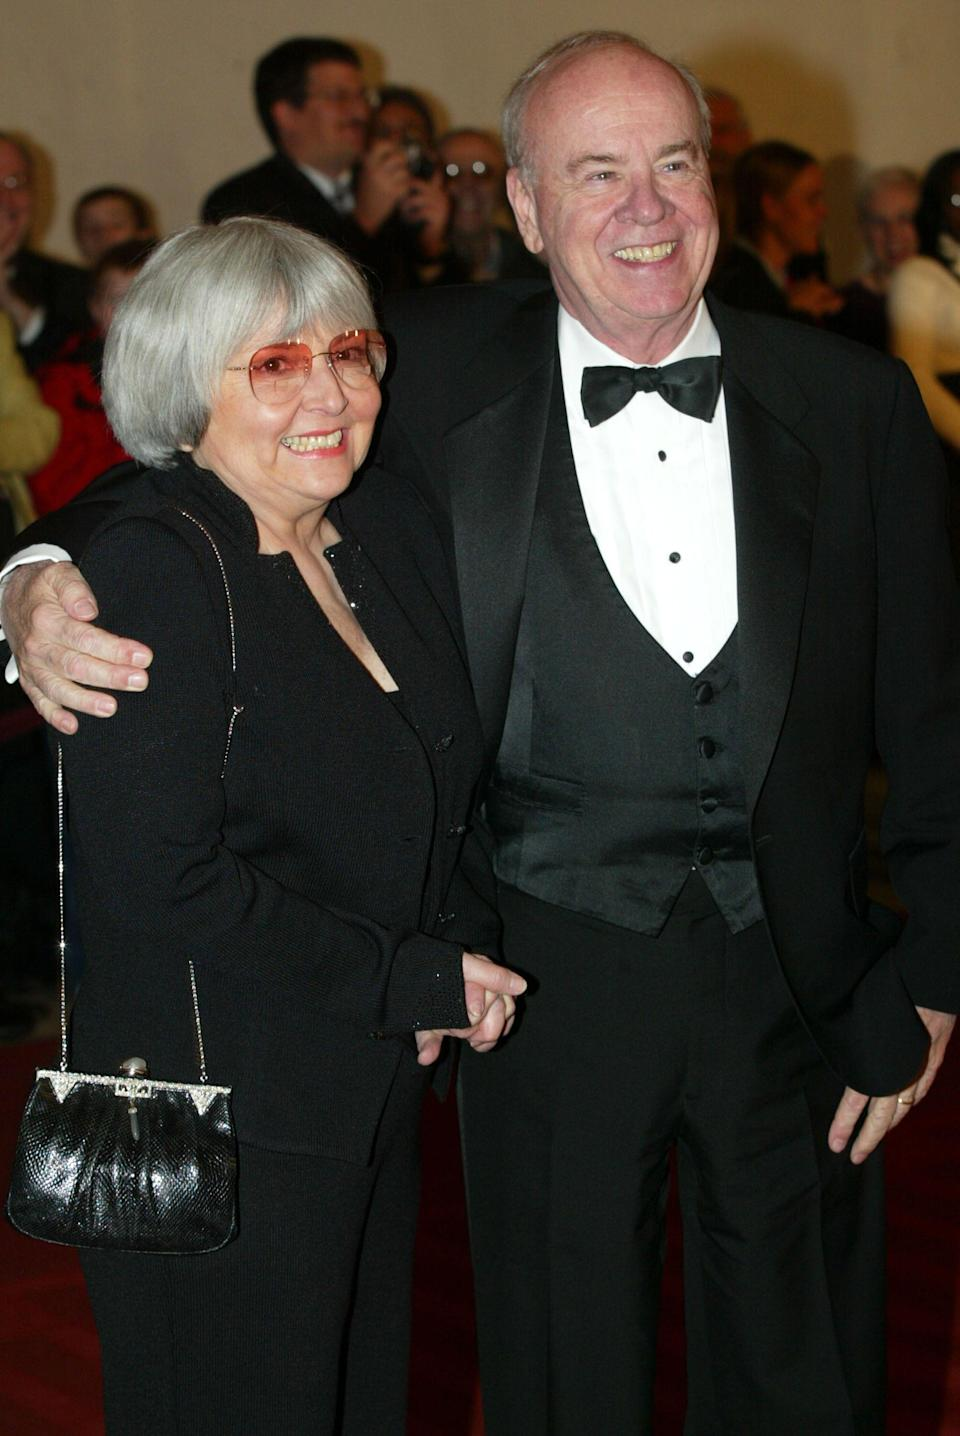 Comedian Tim Conway pictured with wife Charlotte at the 5th Annual Kennedy Center Mark Twain Prize presentation ceremony in 2002 in Washington D.C. (Photo: Alex Wong/Getty Images)